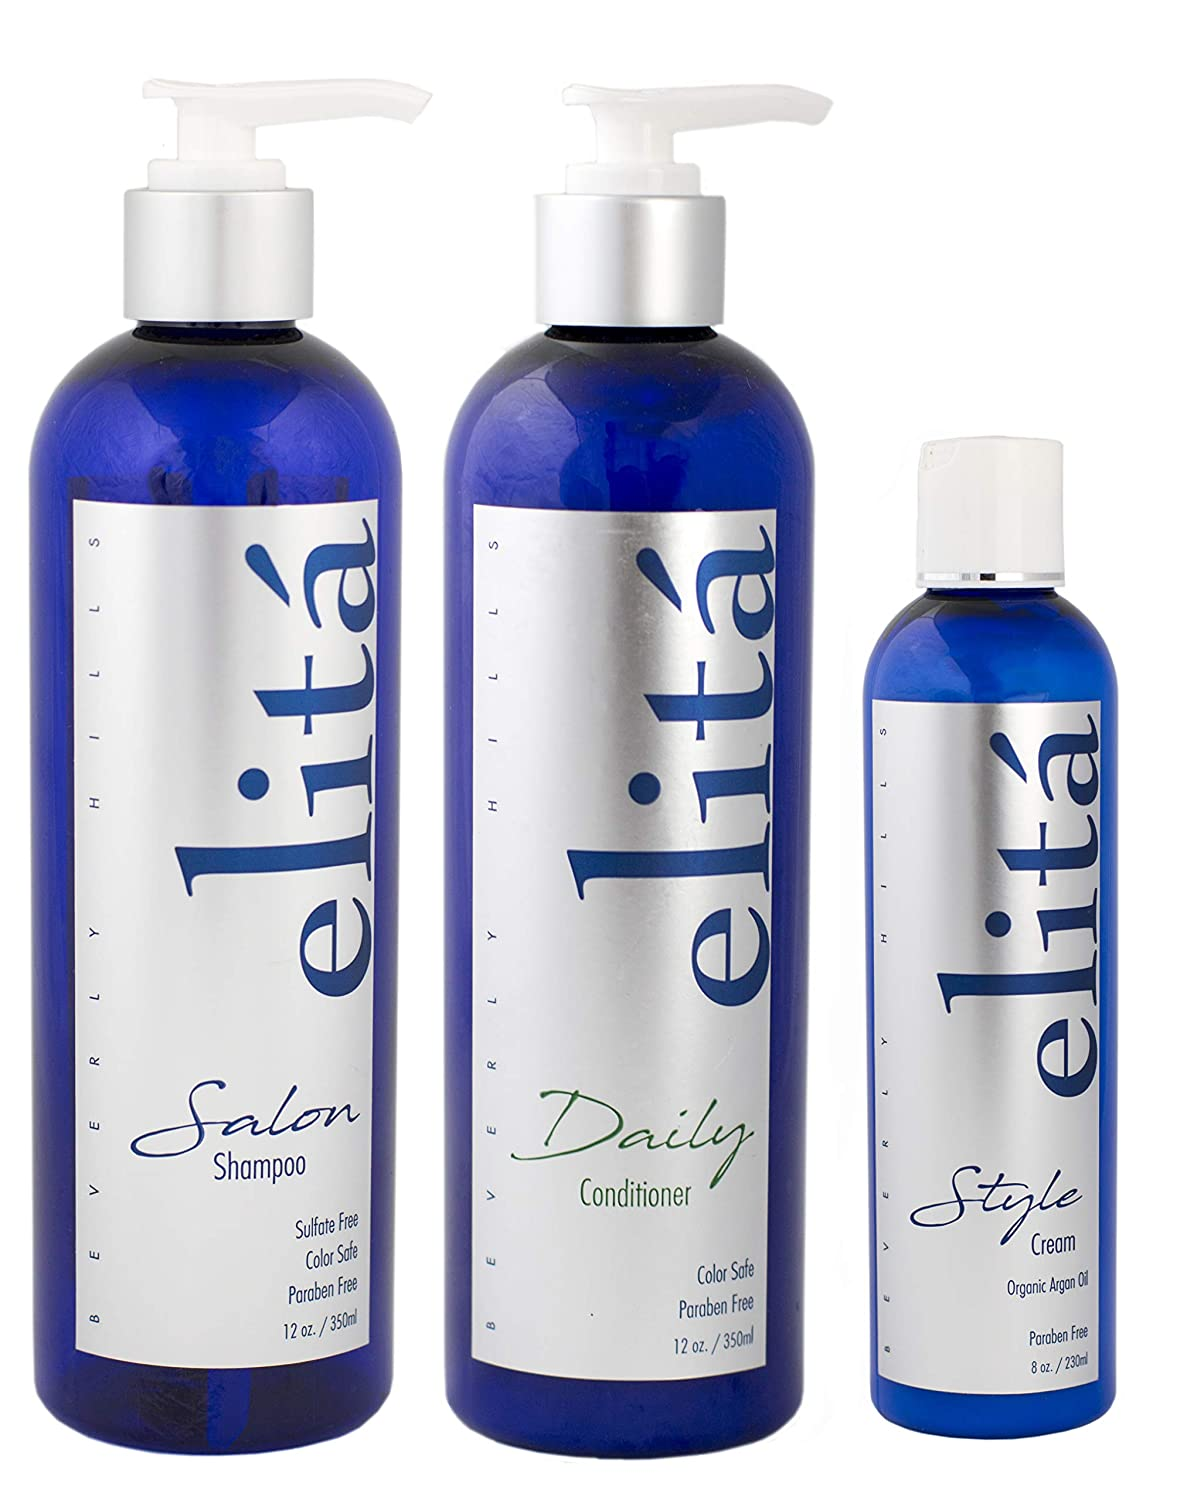 (Official) elita Beverly Hills Hair Maintenance Set: 12oz Salon Shampoo & 12oz Daily Conditioner & 8oz Style Cream: | All Natural | Paraben & Sulfate Free | Made in USA by elita Beverly Hills 81w2B9RbRegL